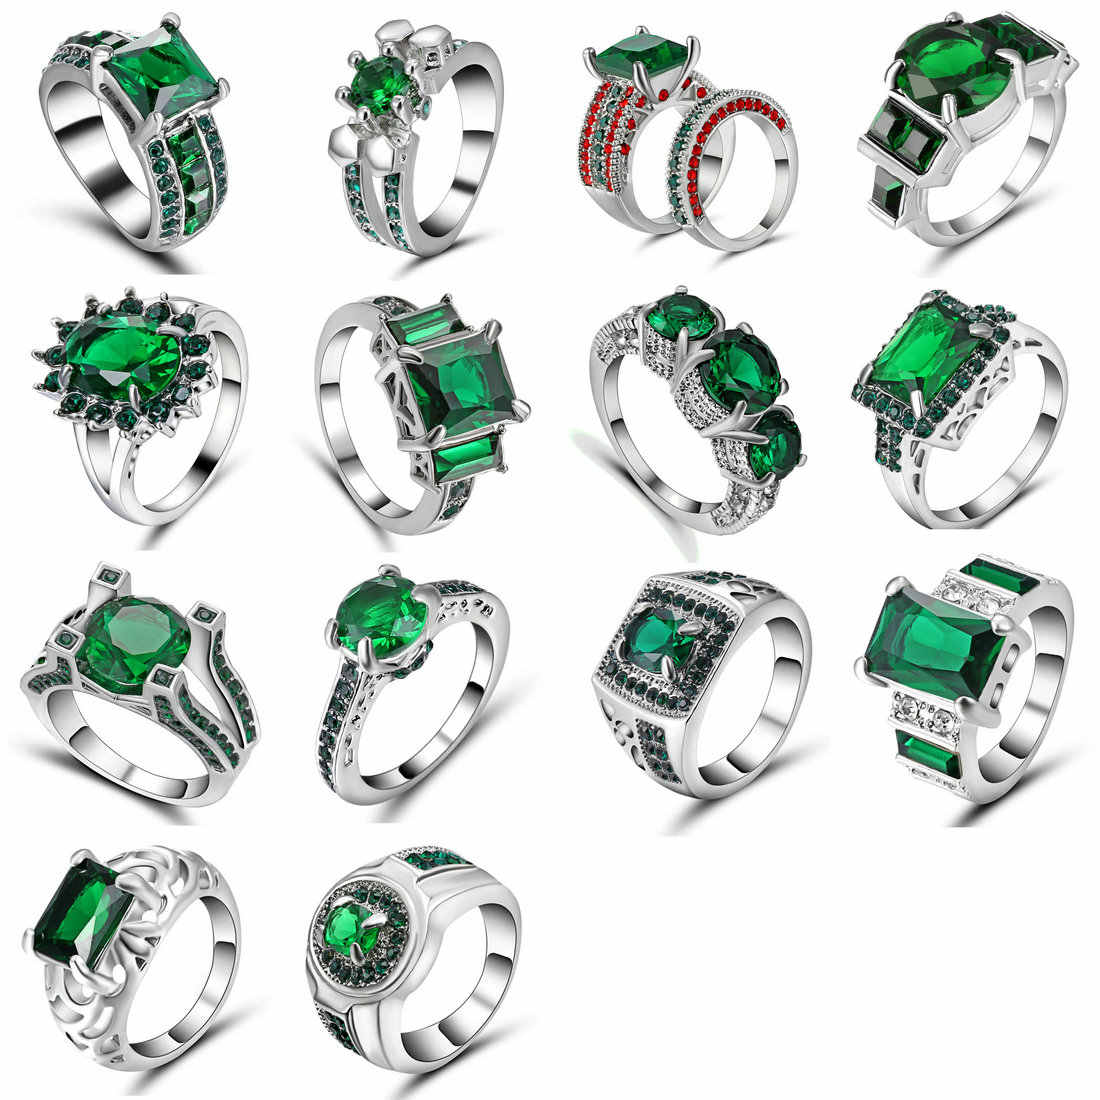 Valentine's Day Gift Womens Silver Plated Wedding Large Colored Ring Green Stones Crystal Zircon Sets Rings Jewelry Size 6